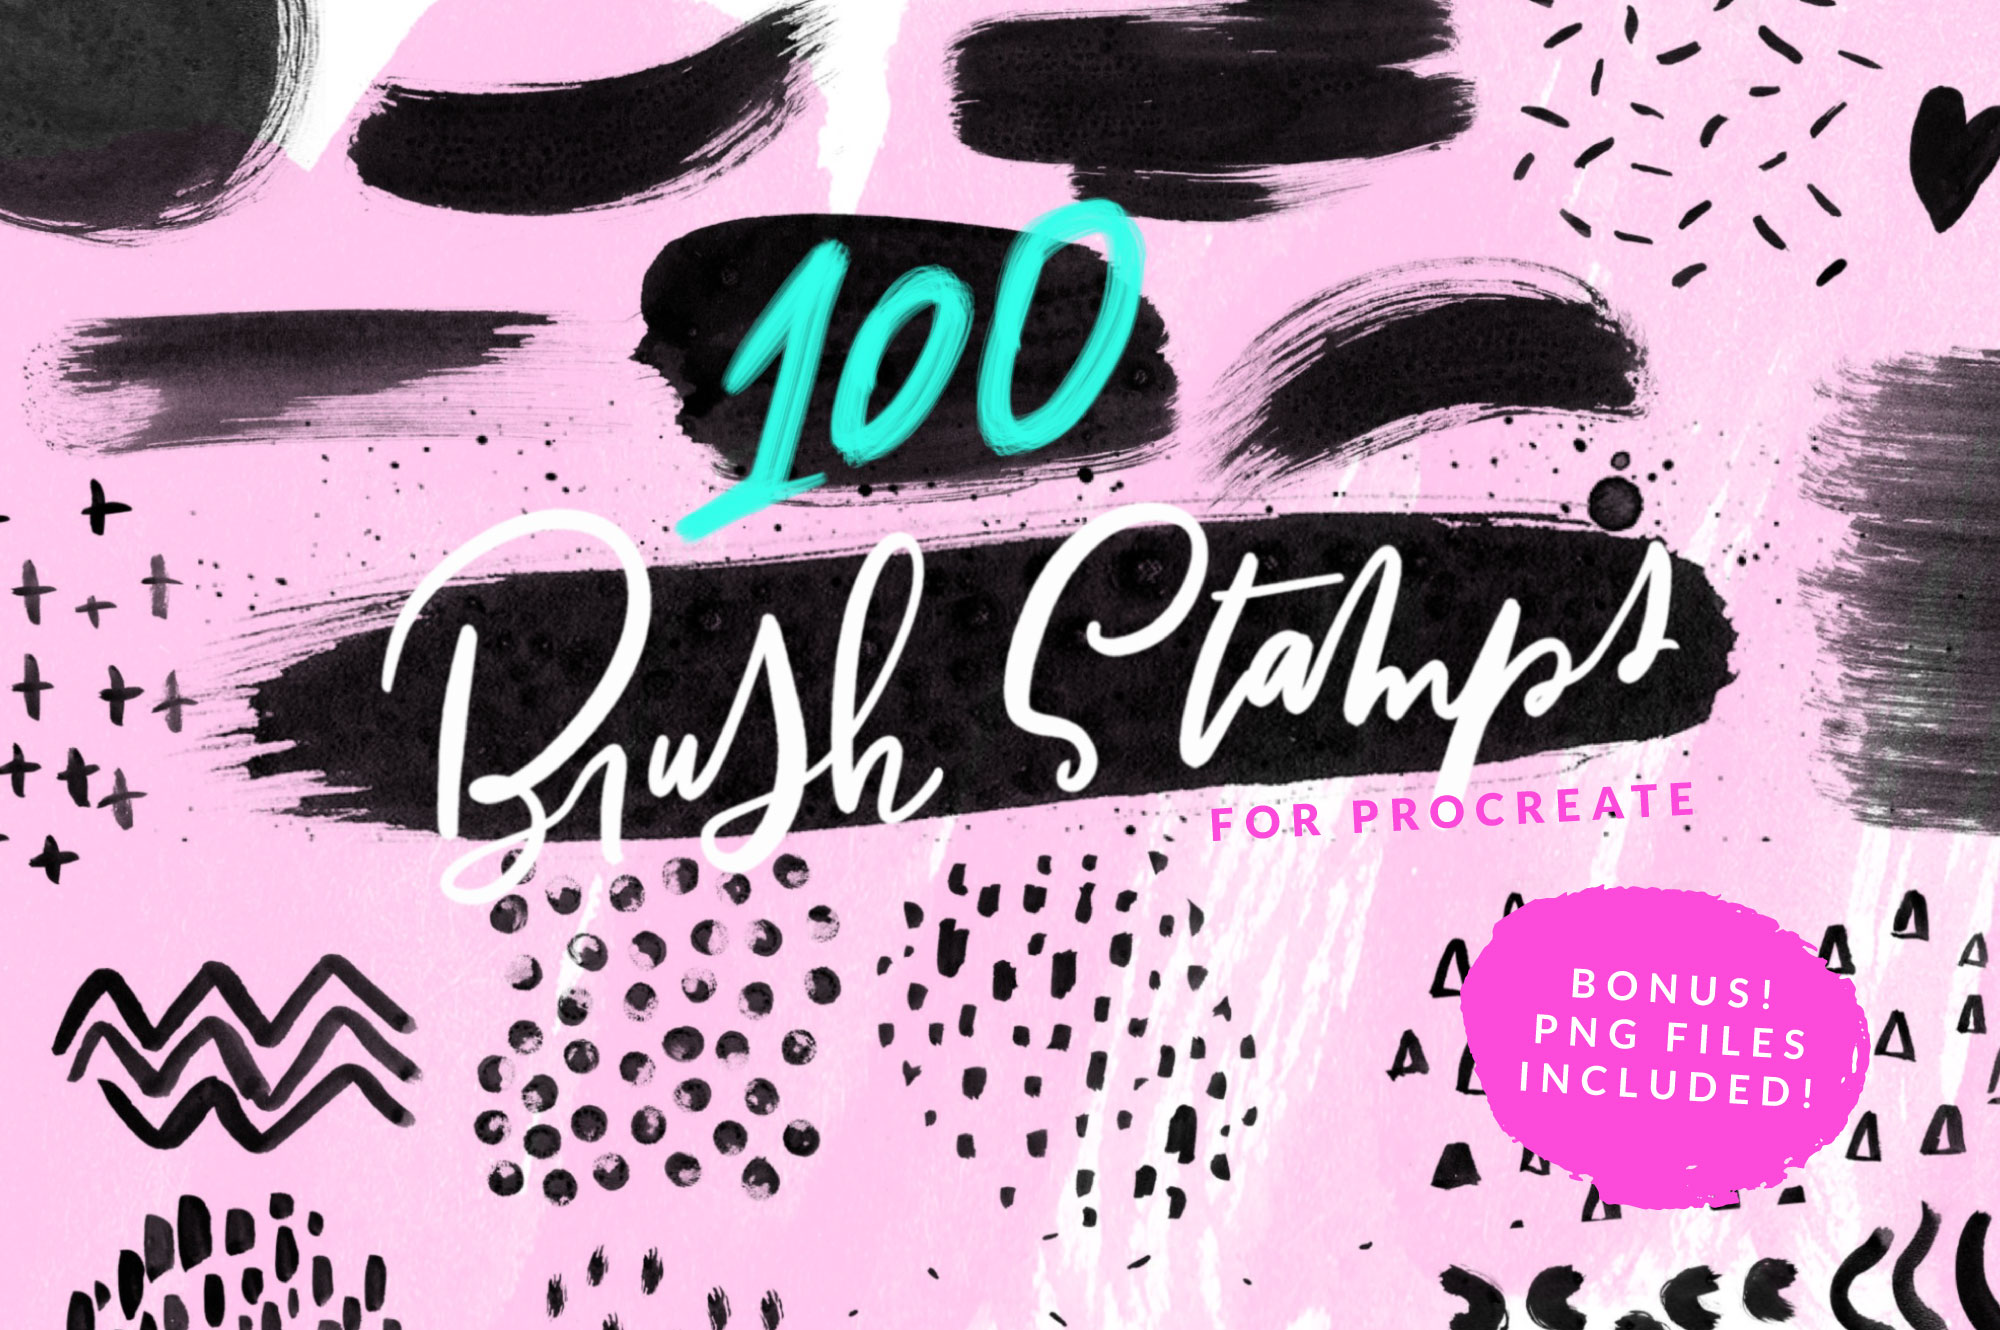 100 Paint Brush Stamps For Procreate